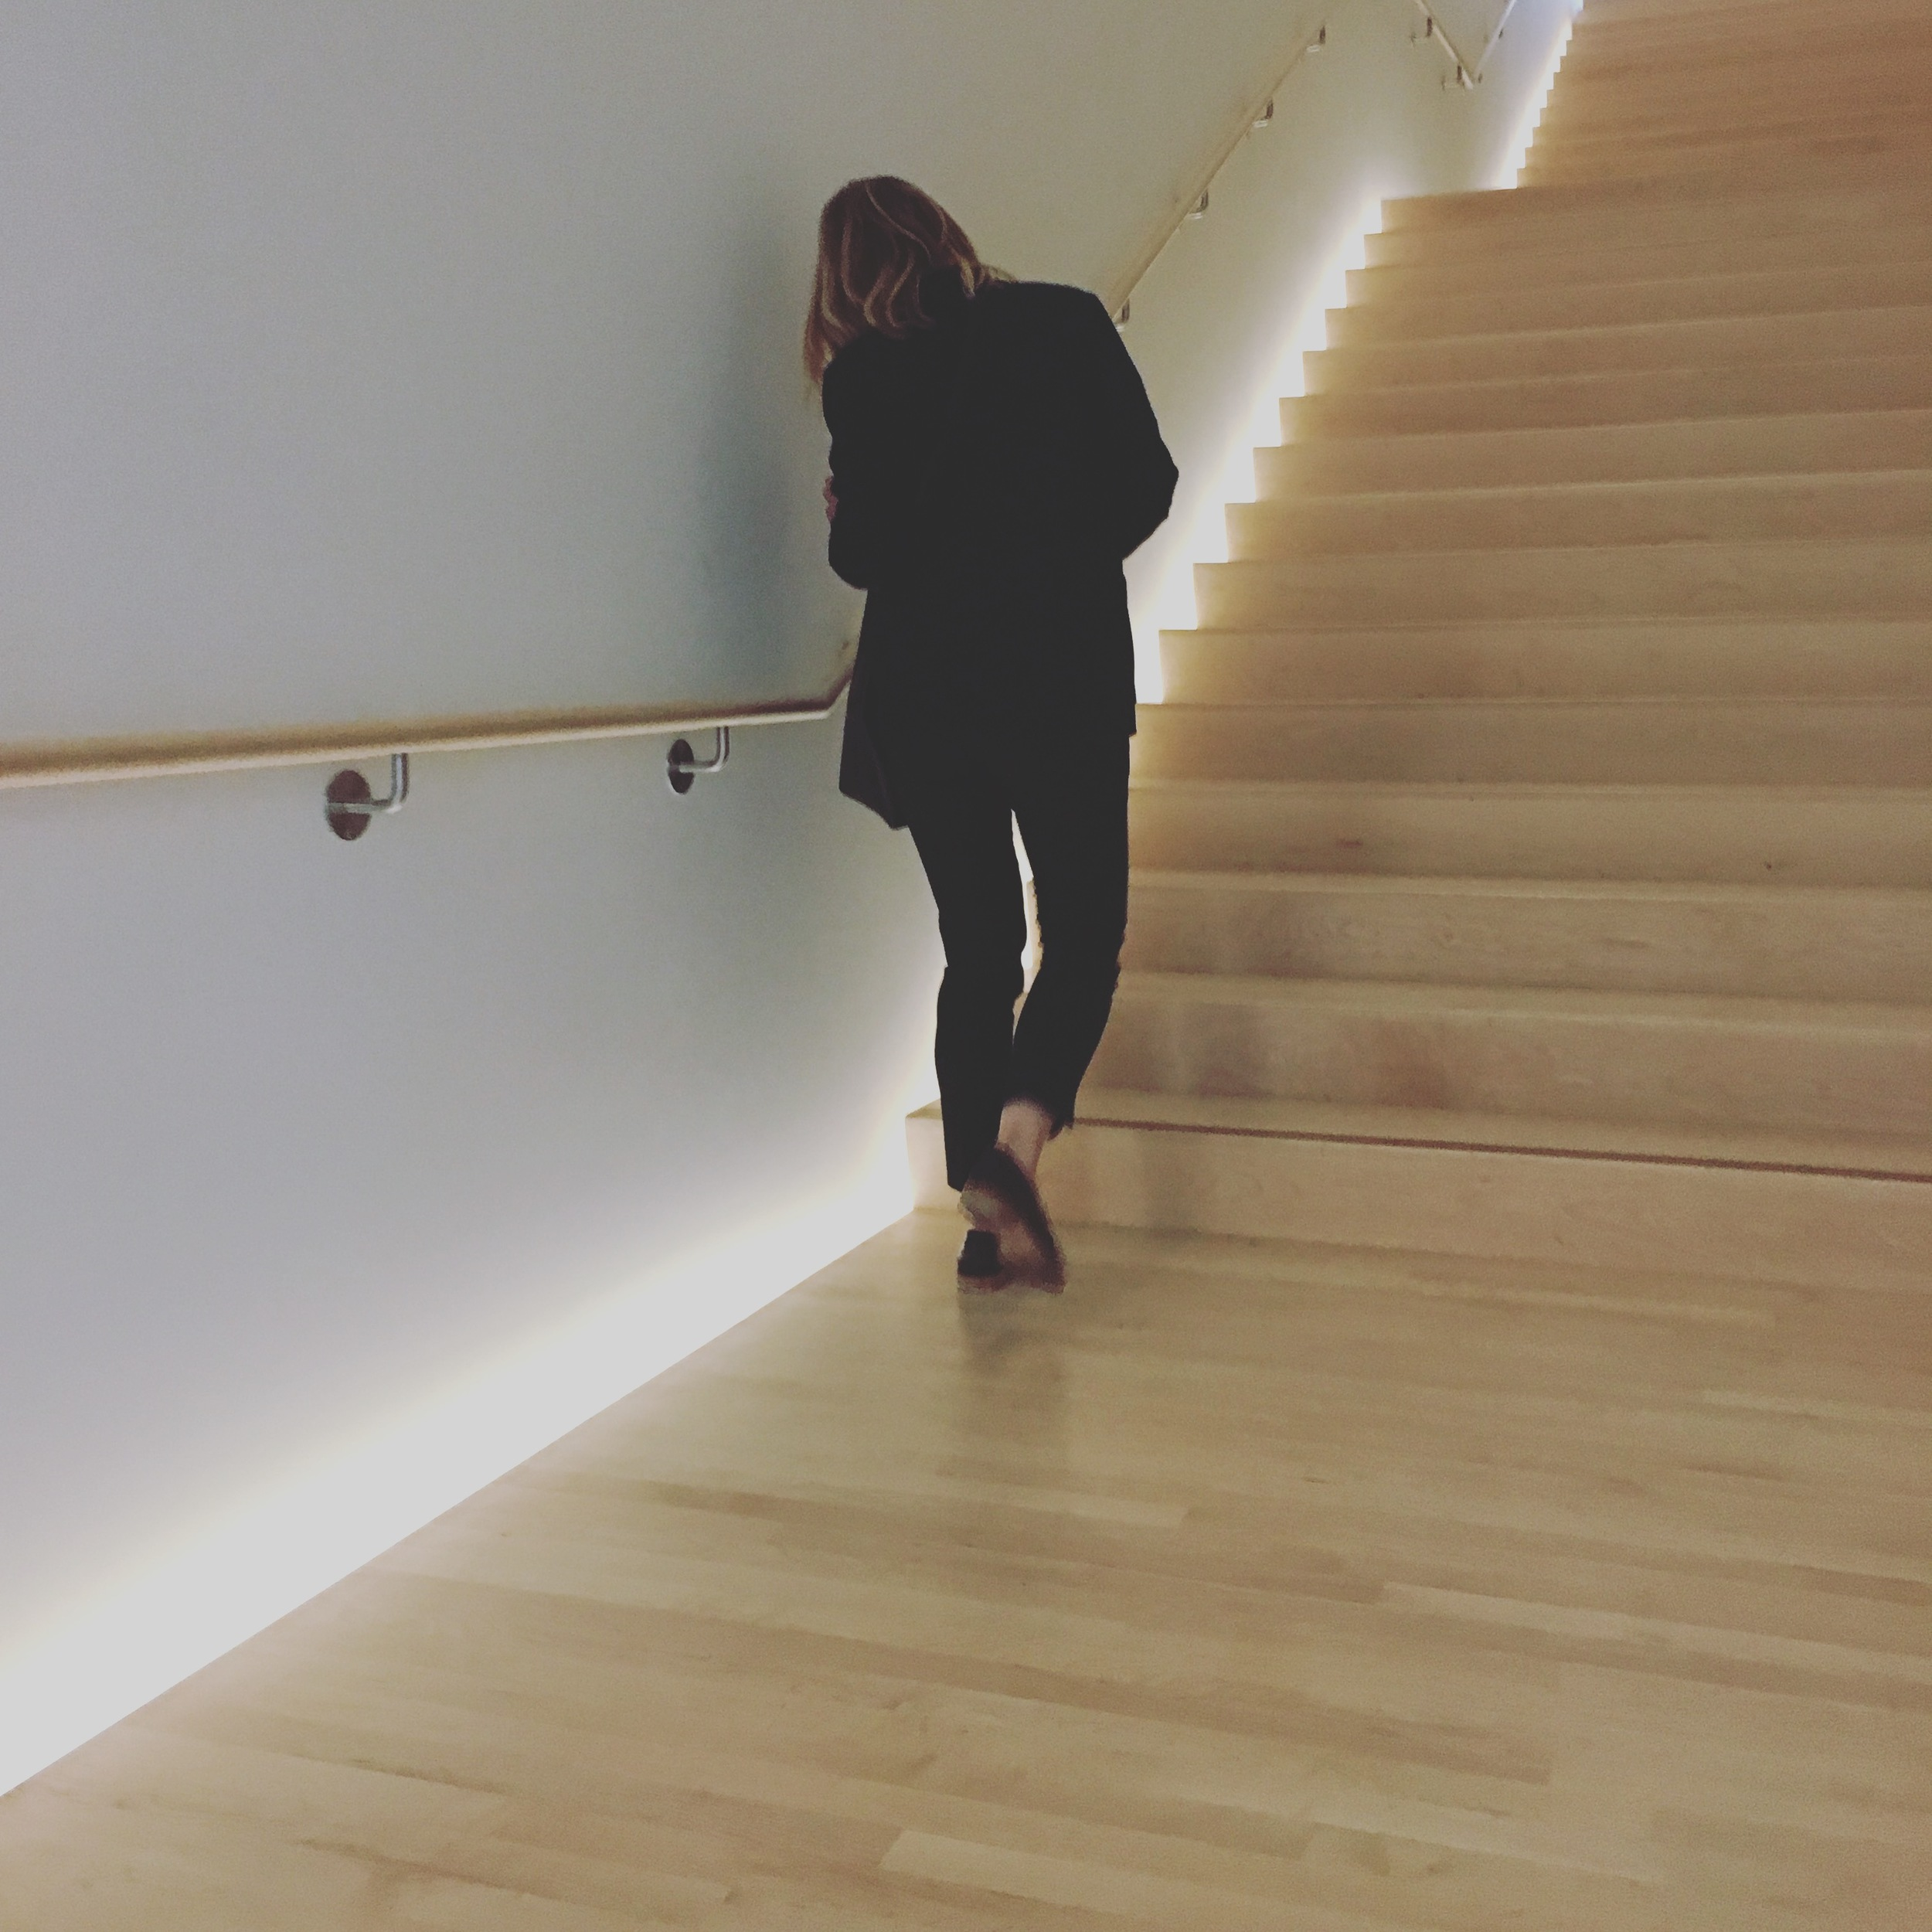 The New San Francisco Museum of Modern Art is now open. Have you made a visit yet?